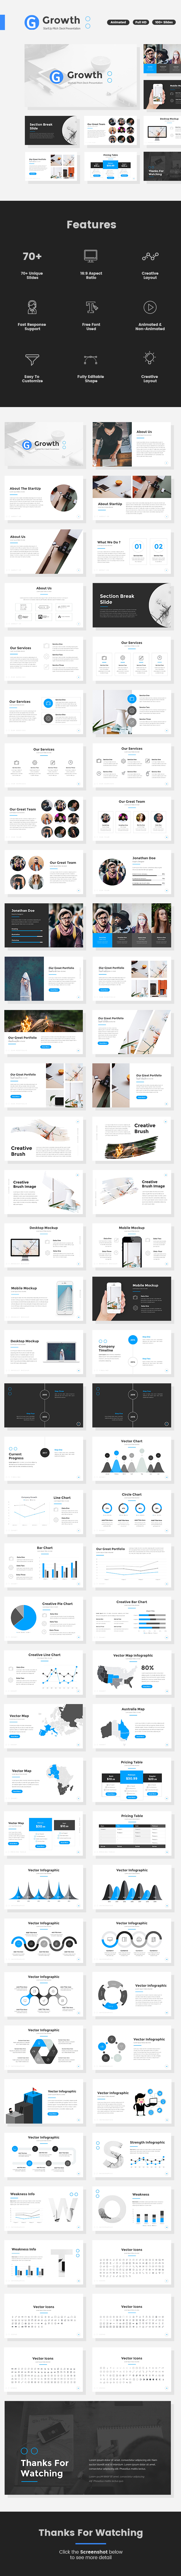 Growth - StartUp Pitch Deck PowerPoint Template - Pitch Deck PowerPoint Templates